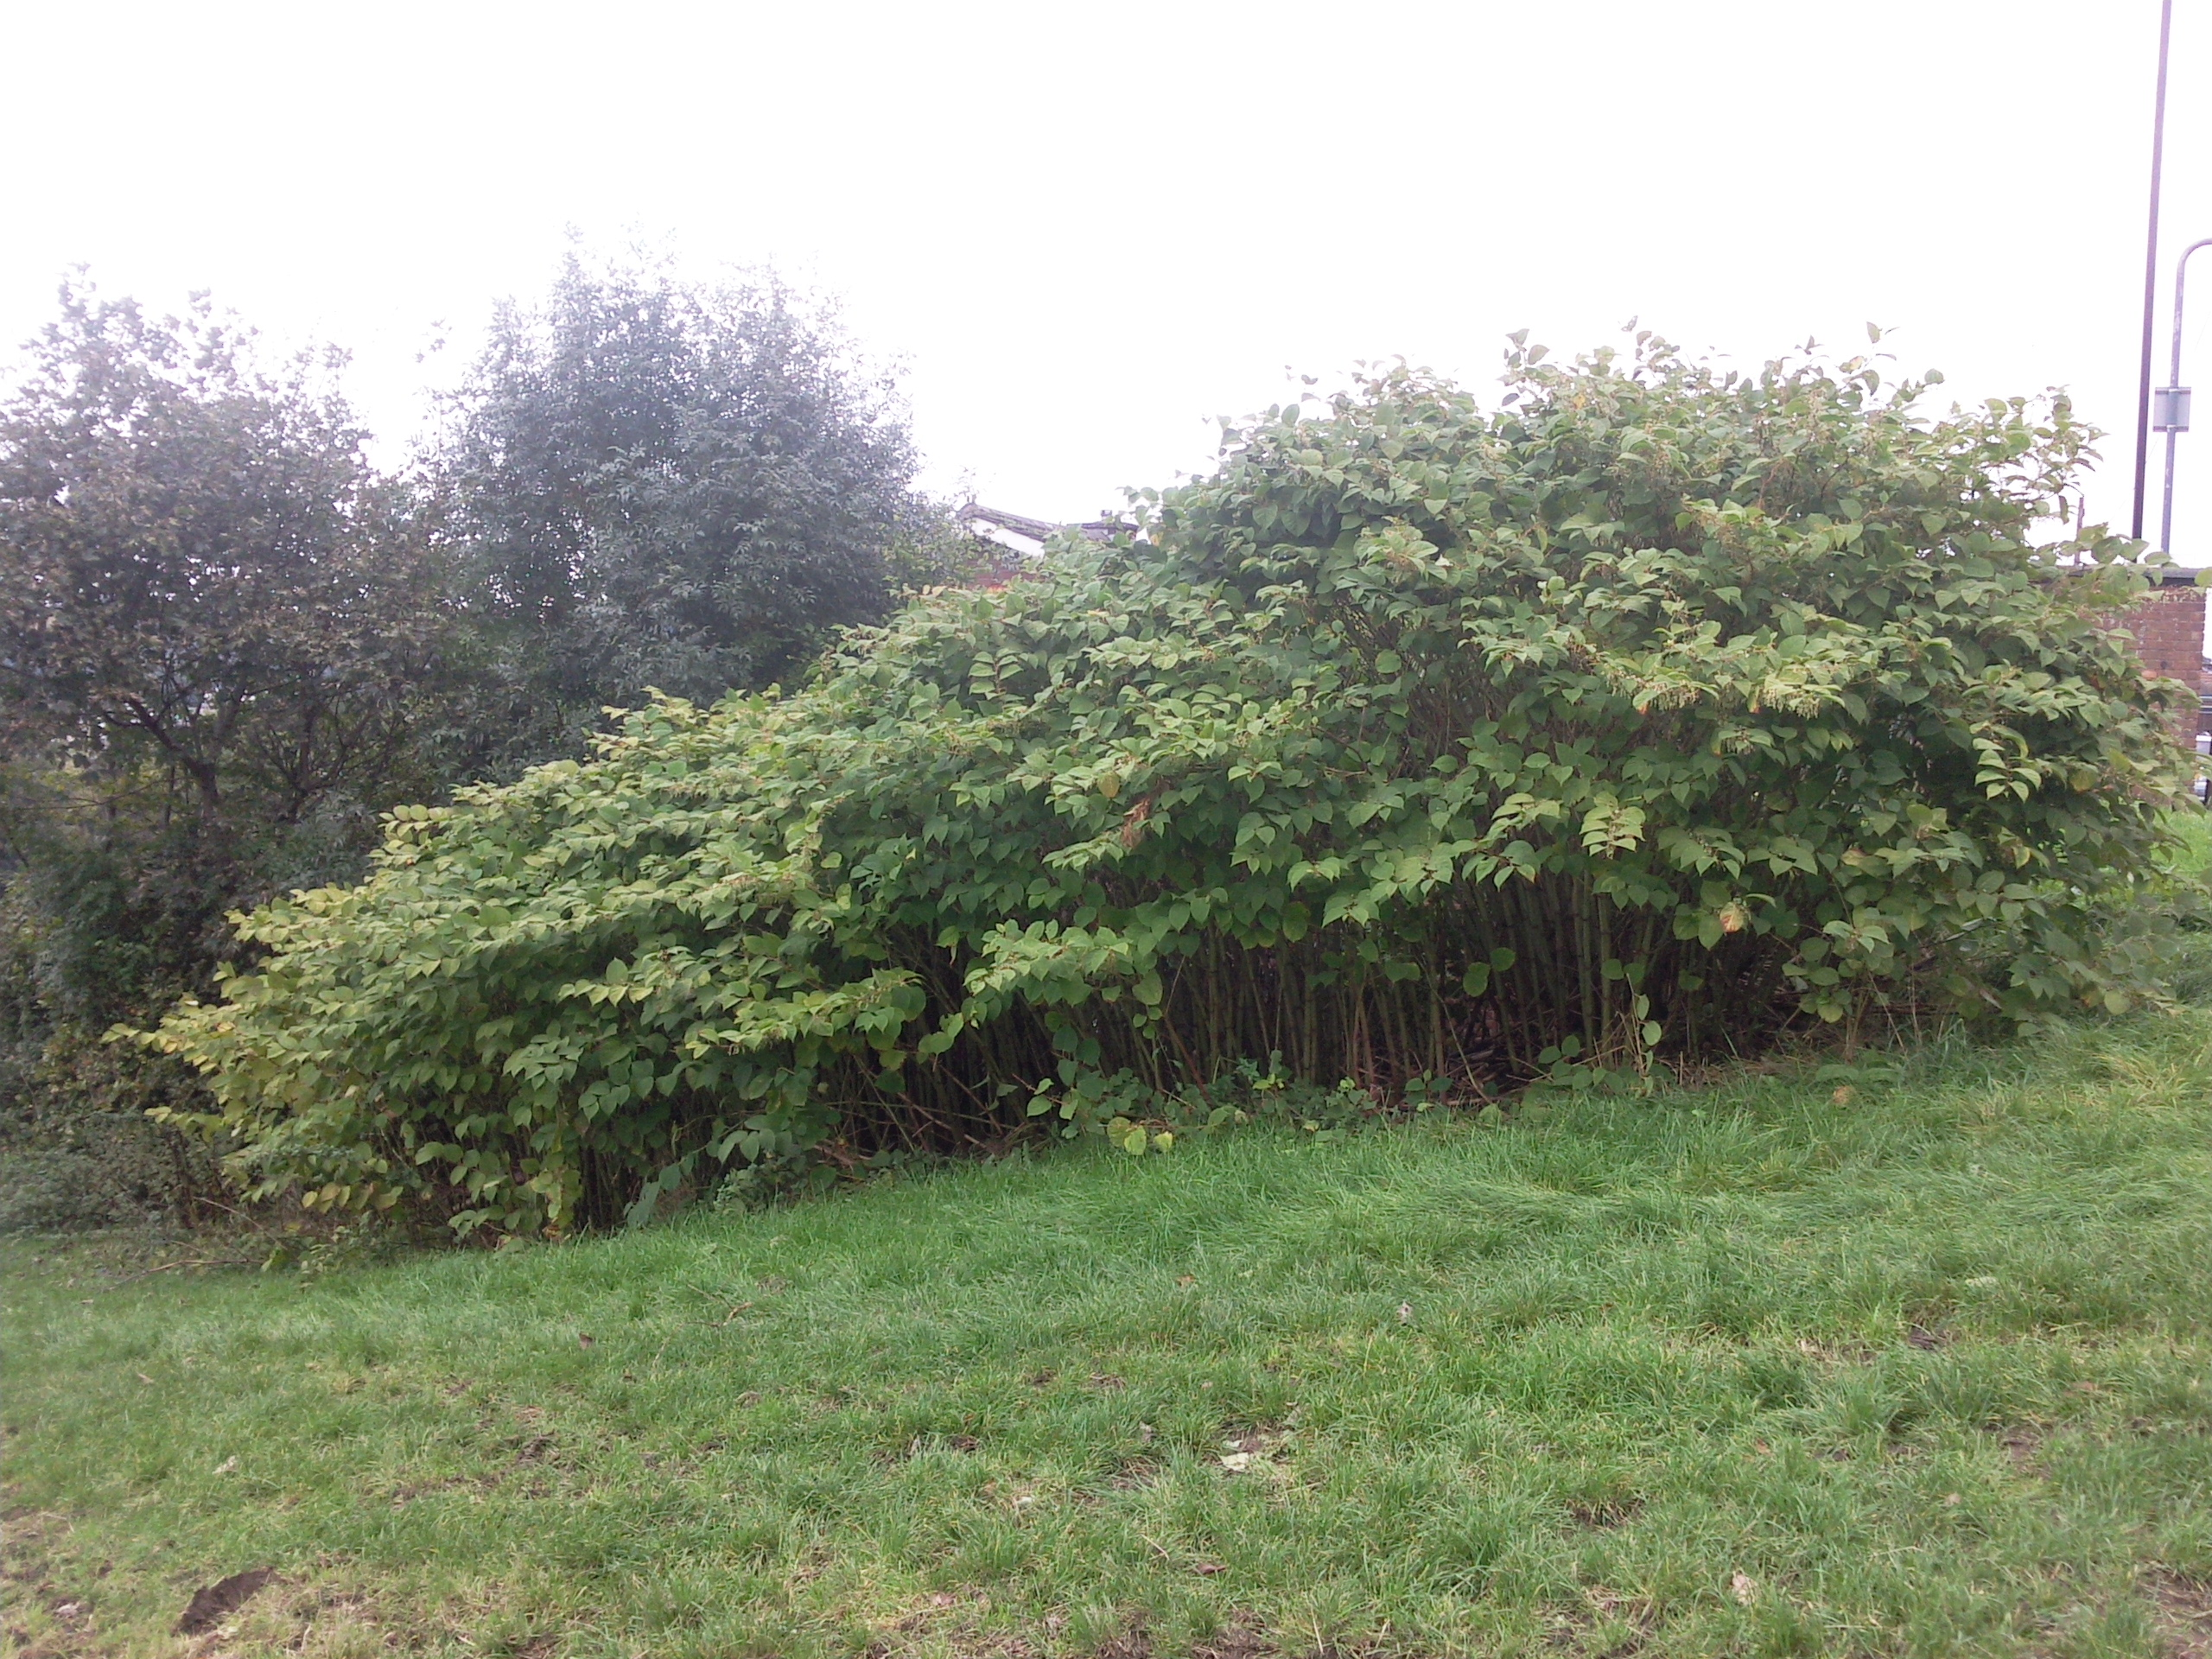 Japanese Knotweed Removal By Sheffield Based Experts